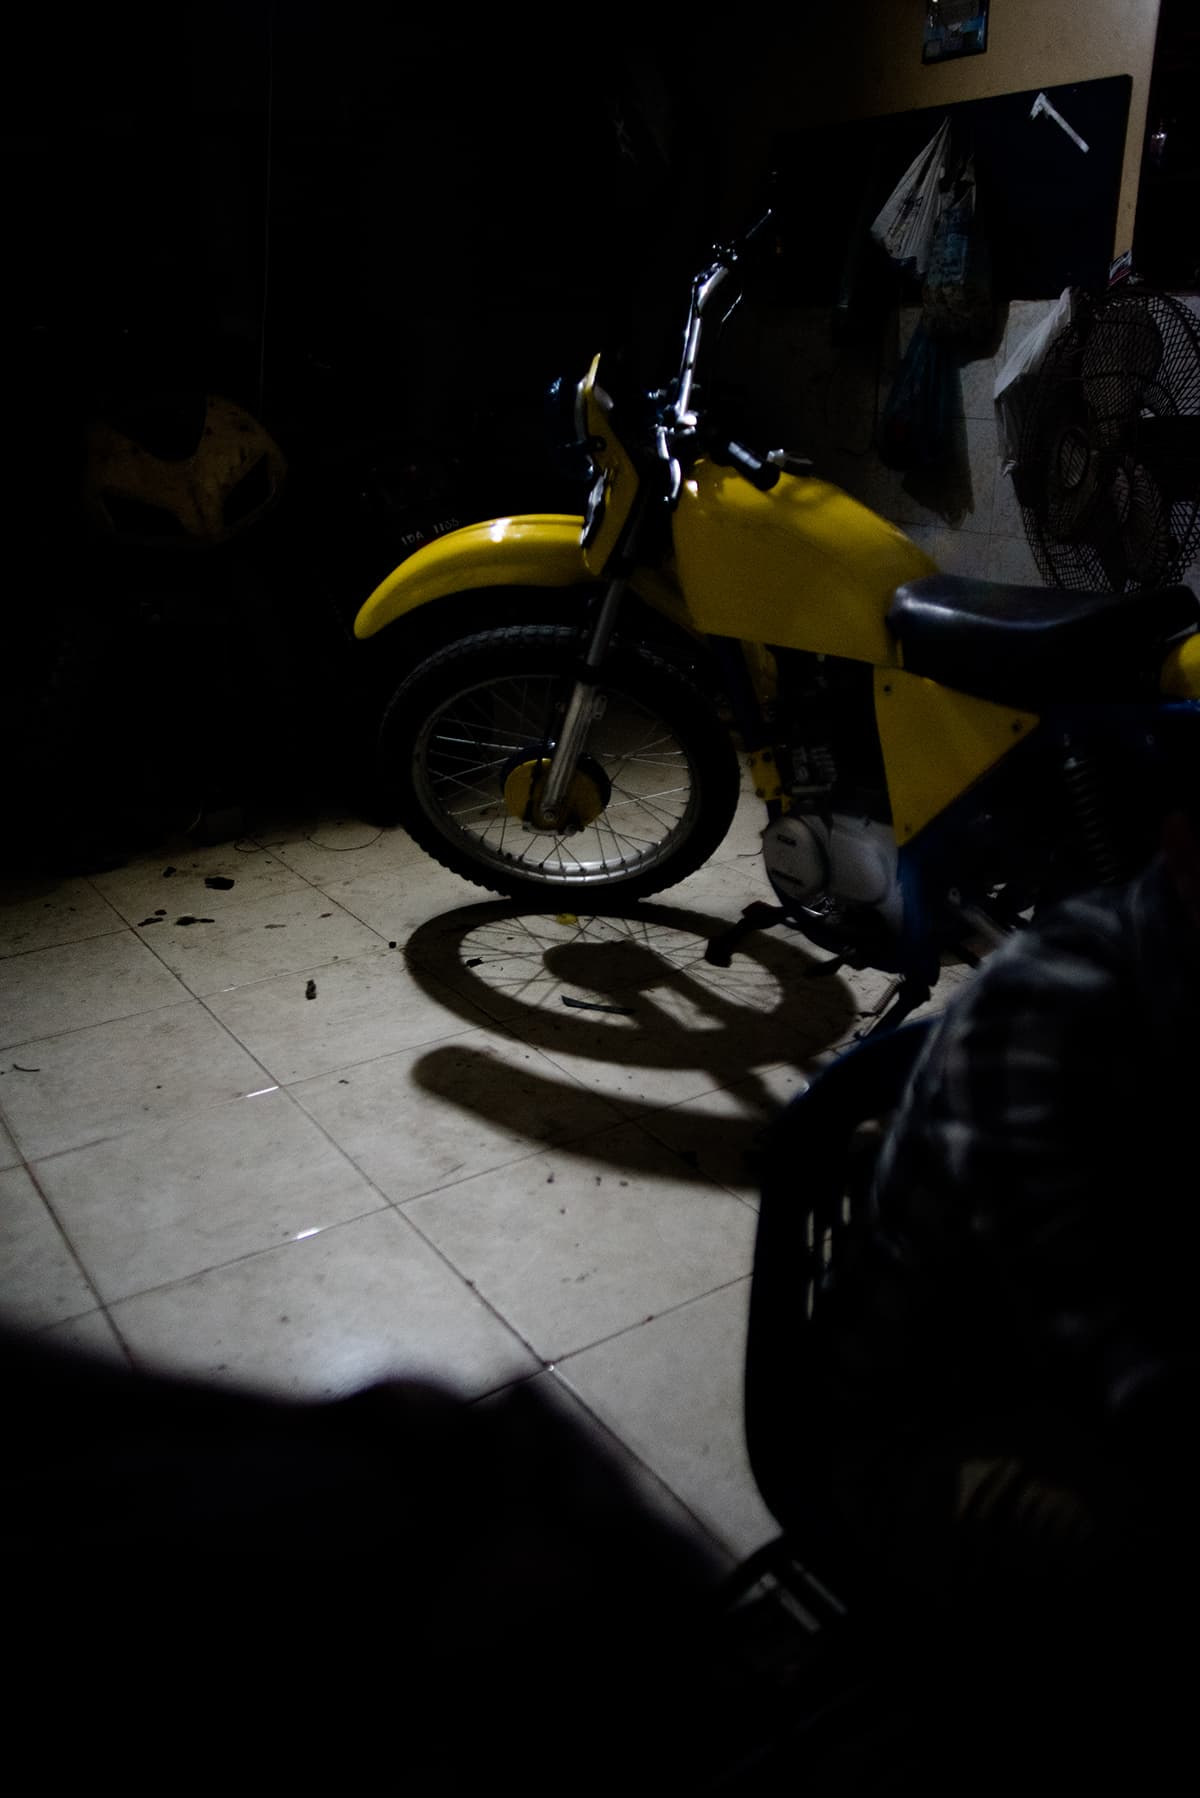 A newly painted motorcycle stands at a workshop, ready for racing